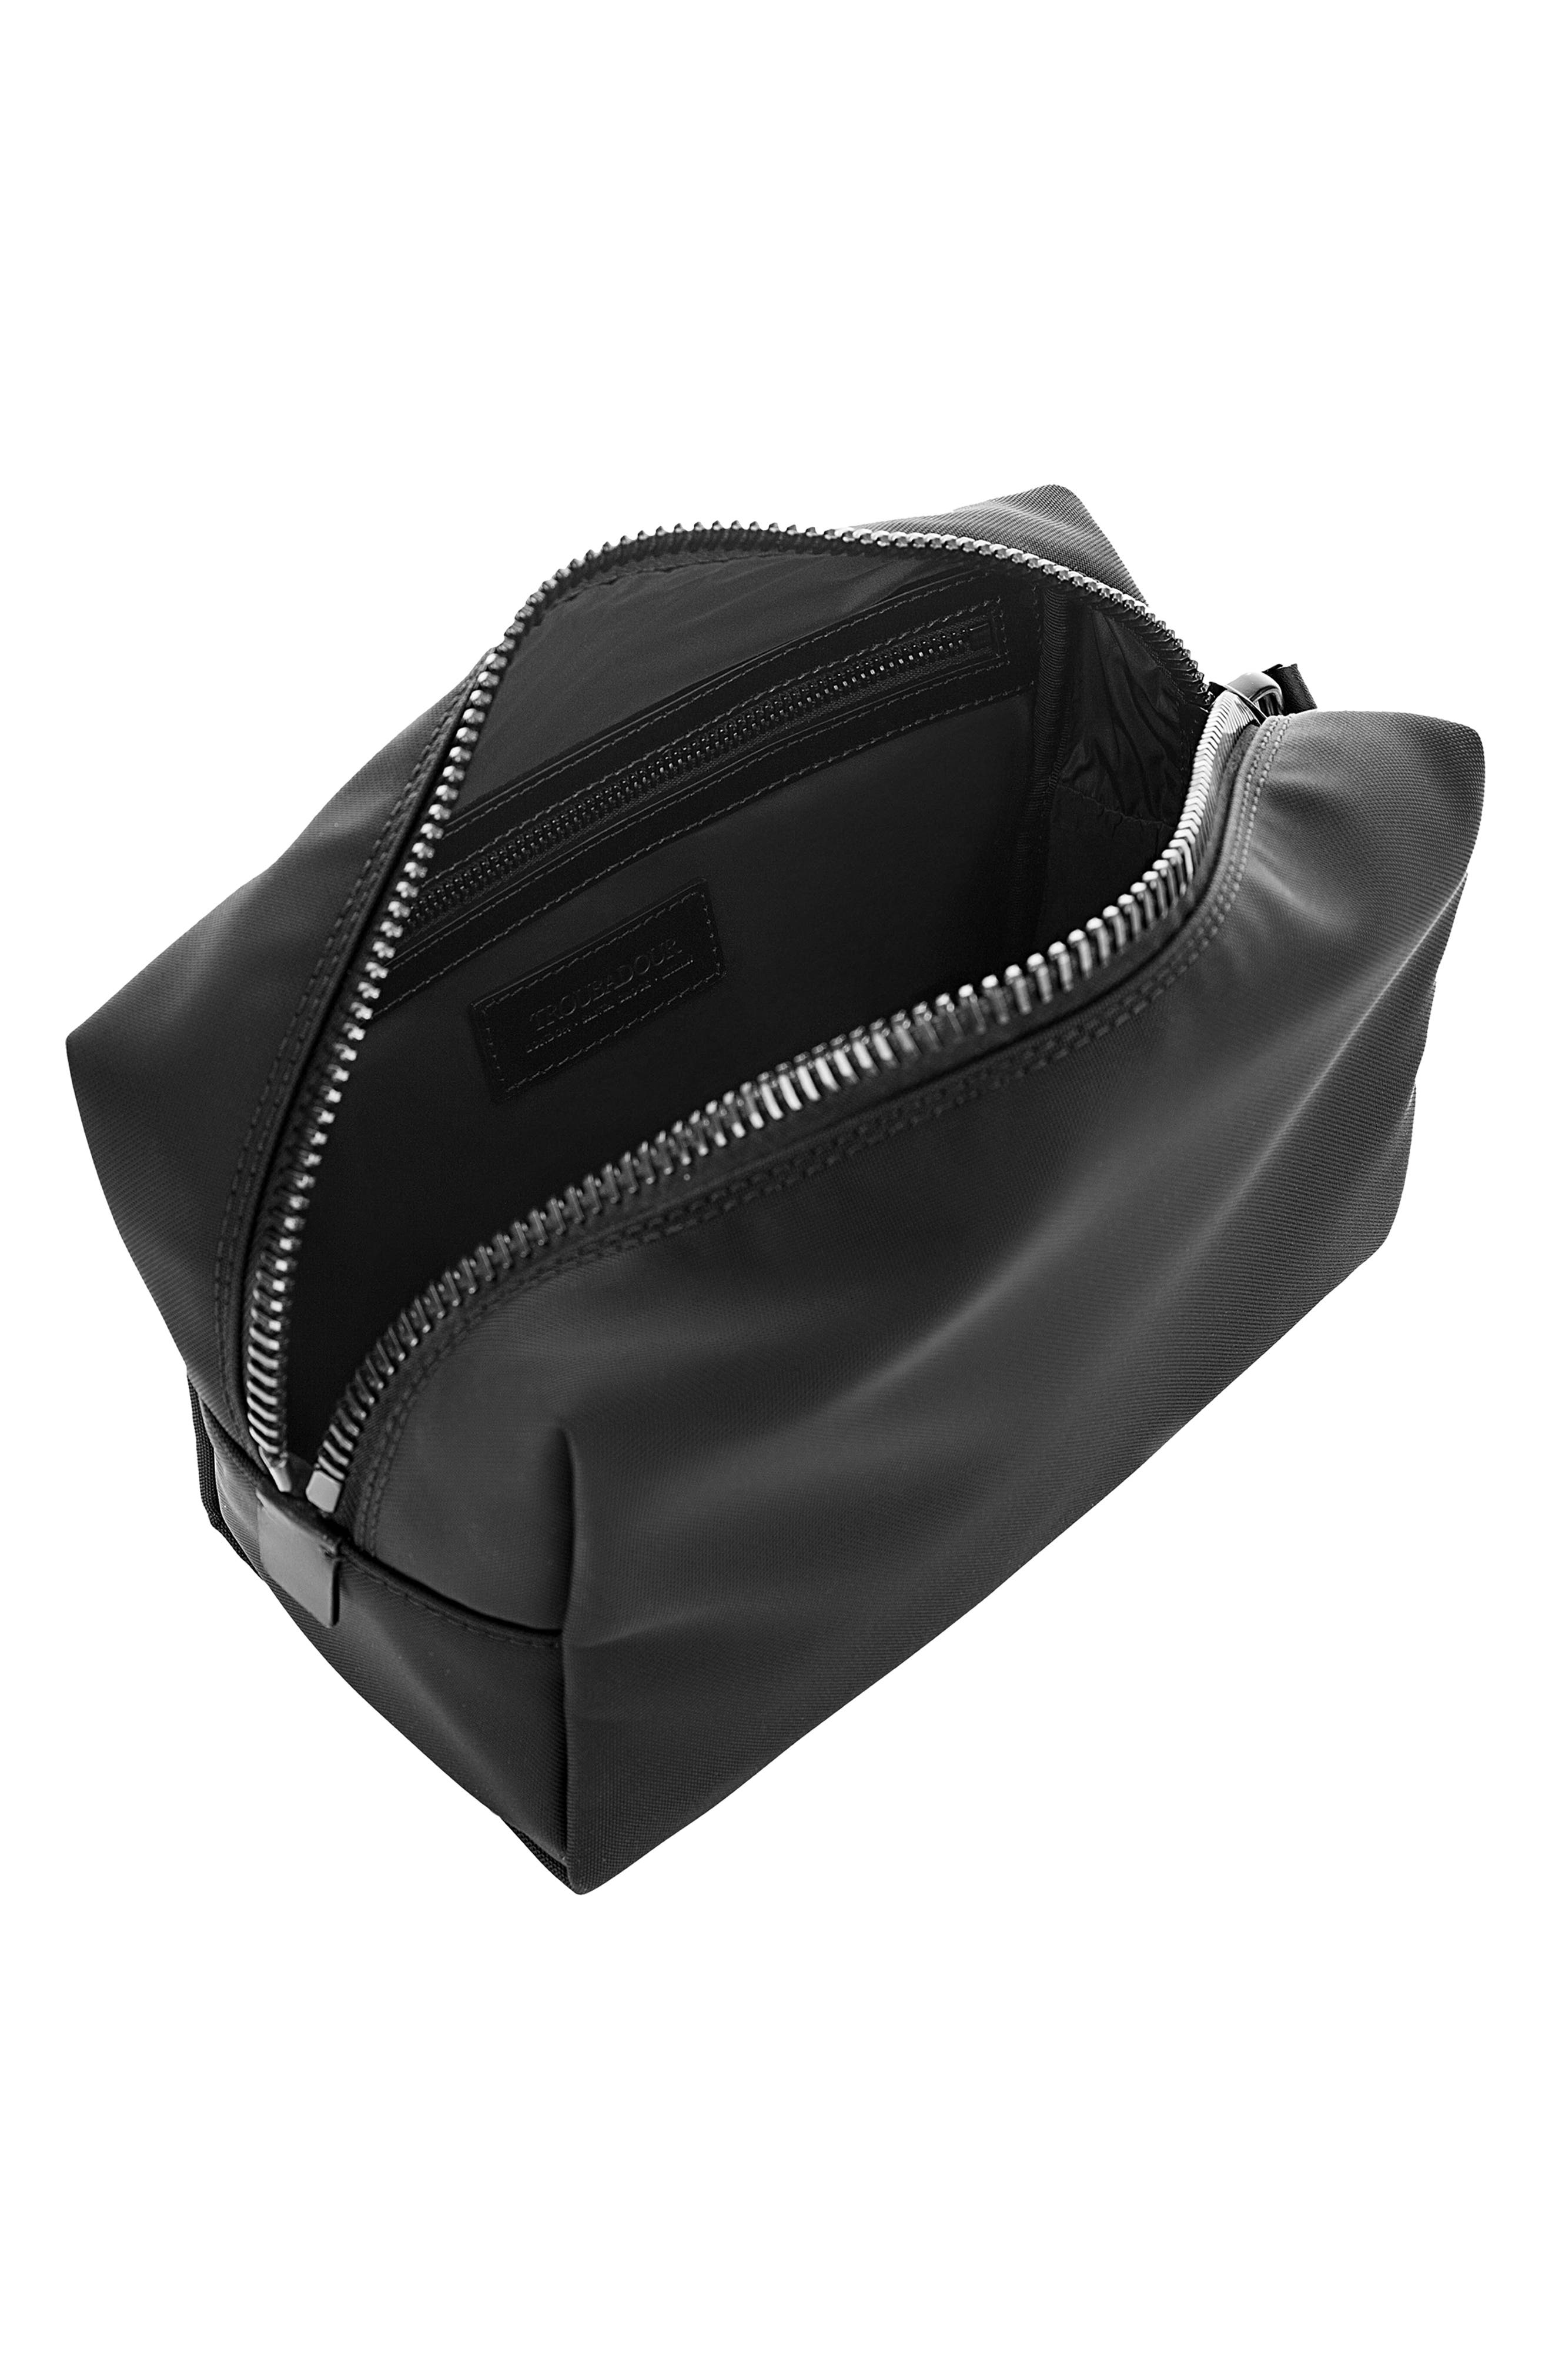 Nylon Dopp Kit,                             Alternate thumbnail 4, color,                             BLACK NYLON/ BLACK LEATHER